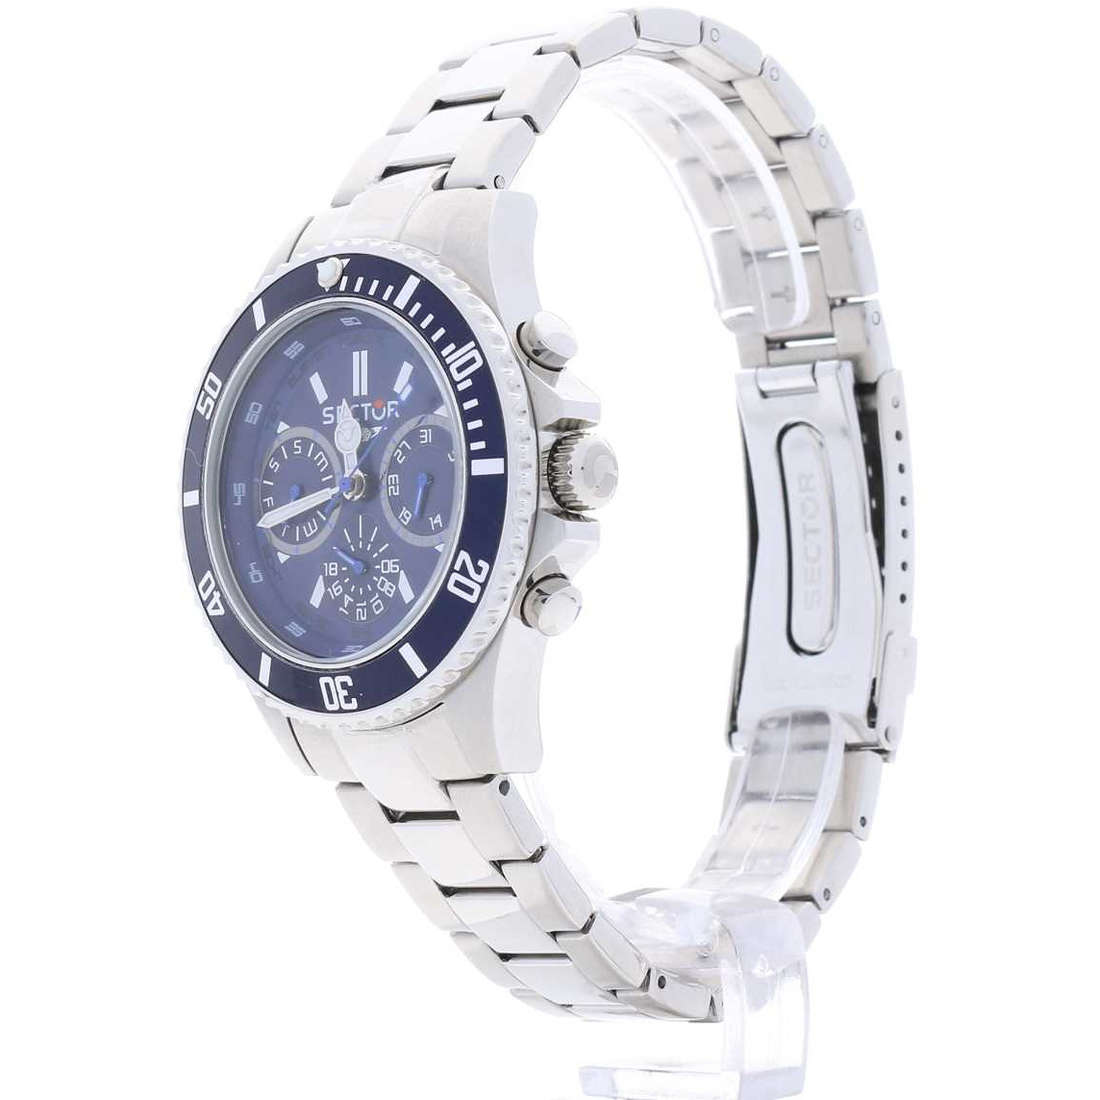 vente montres homme Sector R3253161009